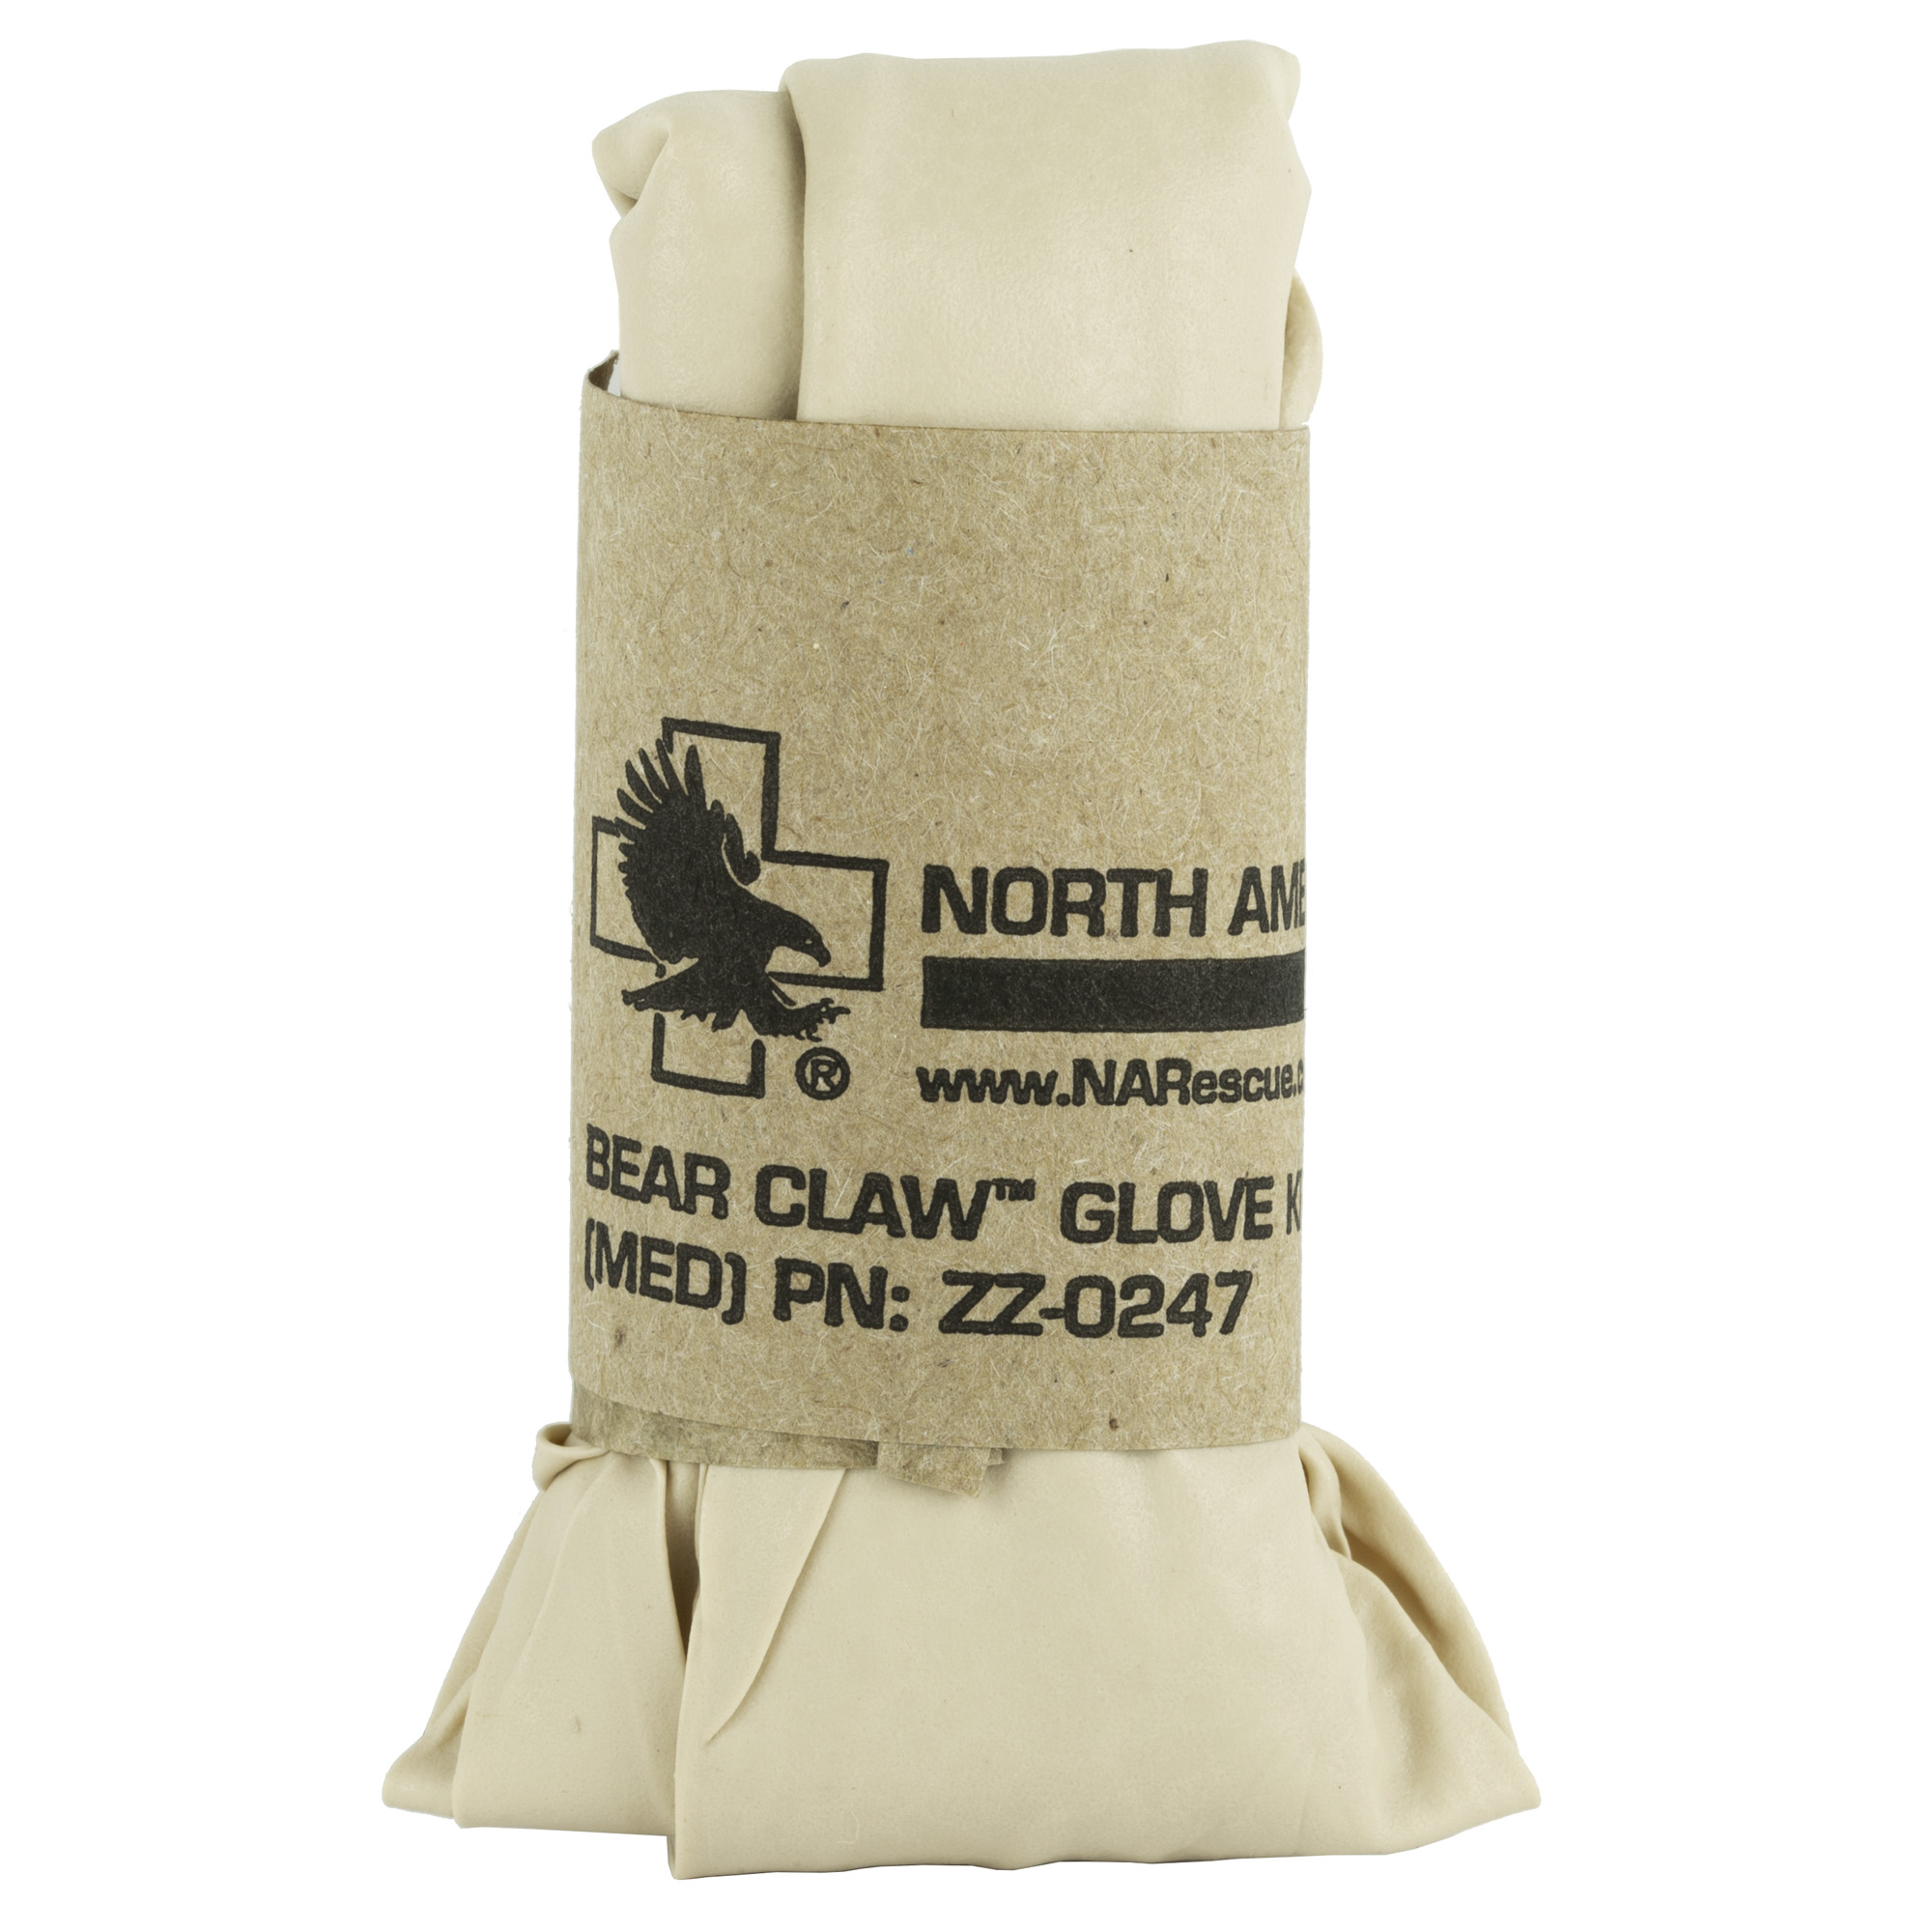 "Bear Claw Ultimate Nitrile gloves are made of 100% Nitrile material which is free of the allergens found in standard latex gloves. They are engineered to give the users high performance by offering both maximum protection and unsurpassed tactile sensitivity. This careful attention to detail includes textured fingertips to help with fine motor skills"" beaded cuffs for quick and easy donning and a thickened palm for durability and reliability. These ambidextrous gloves are packaged 25 pairs per bag. Designed for single-use only."